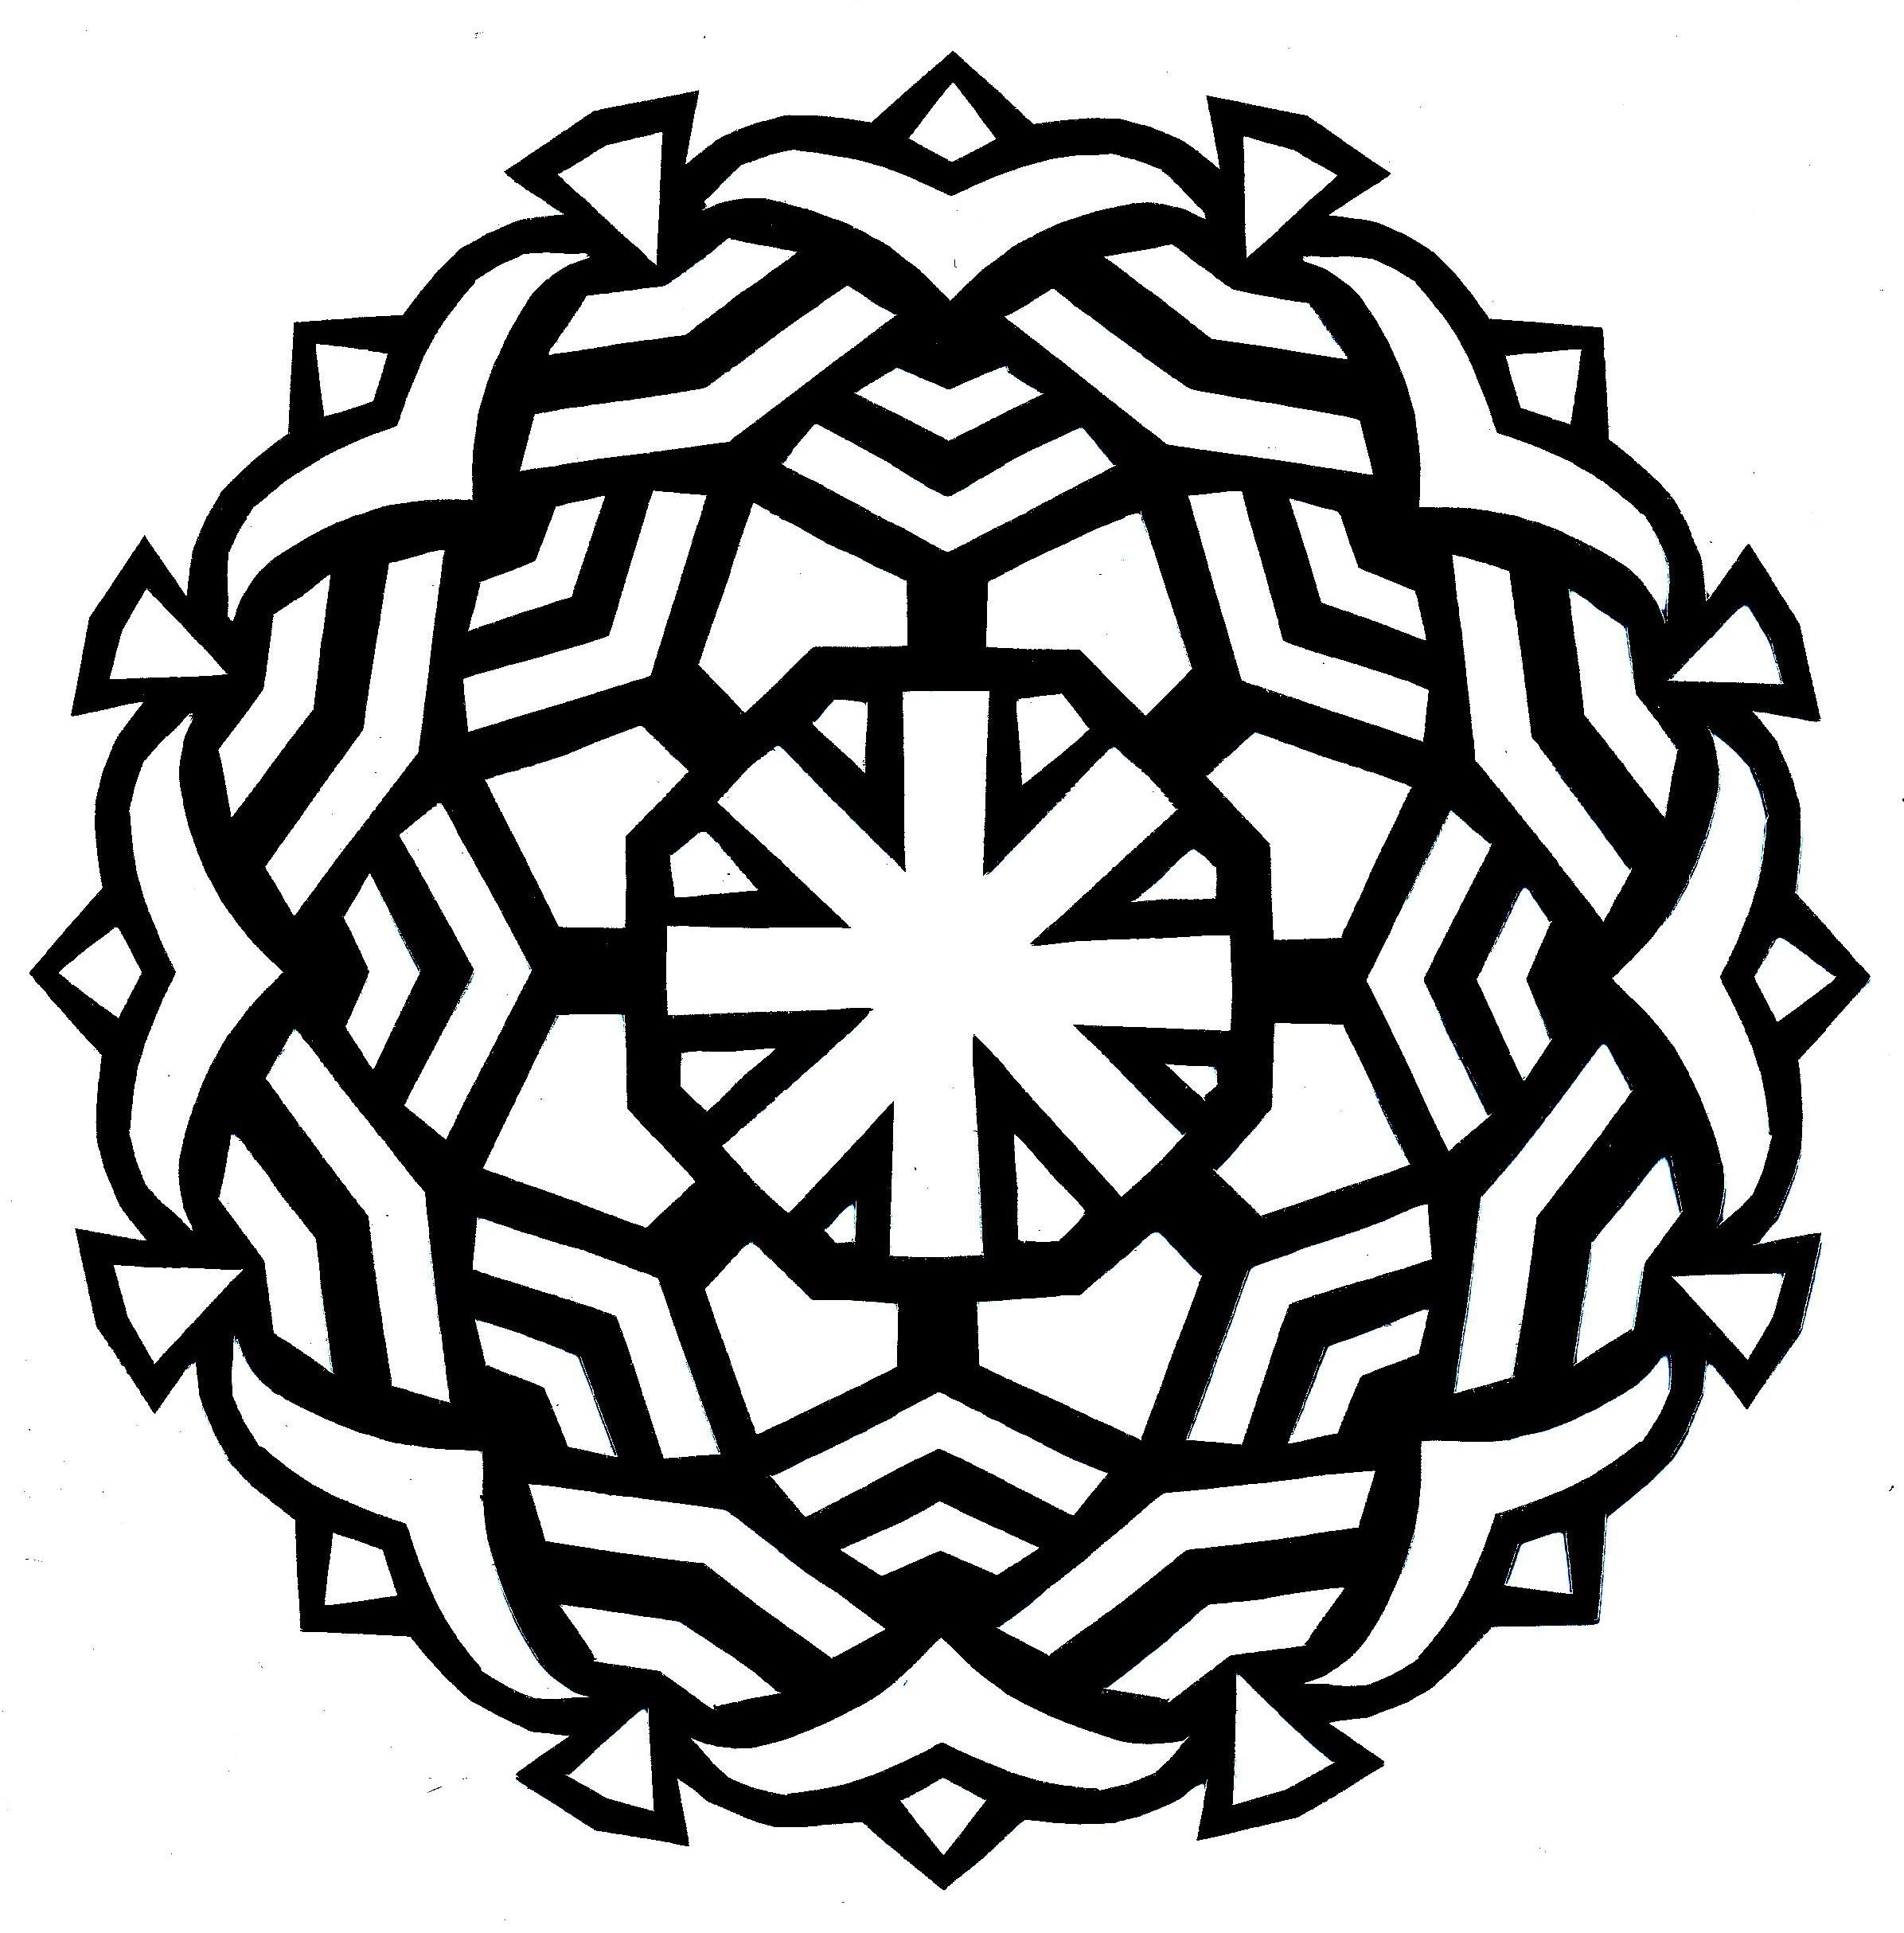 2392x2428 Round Mandala Coloring Pages New Best Simple Mandala Coloring